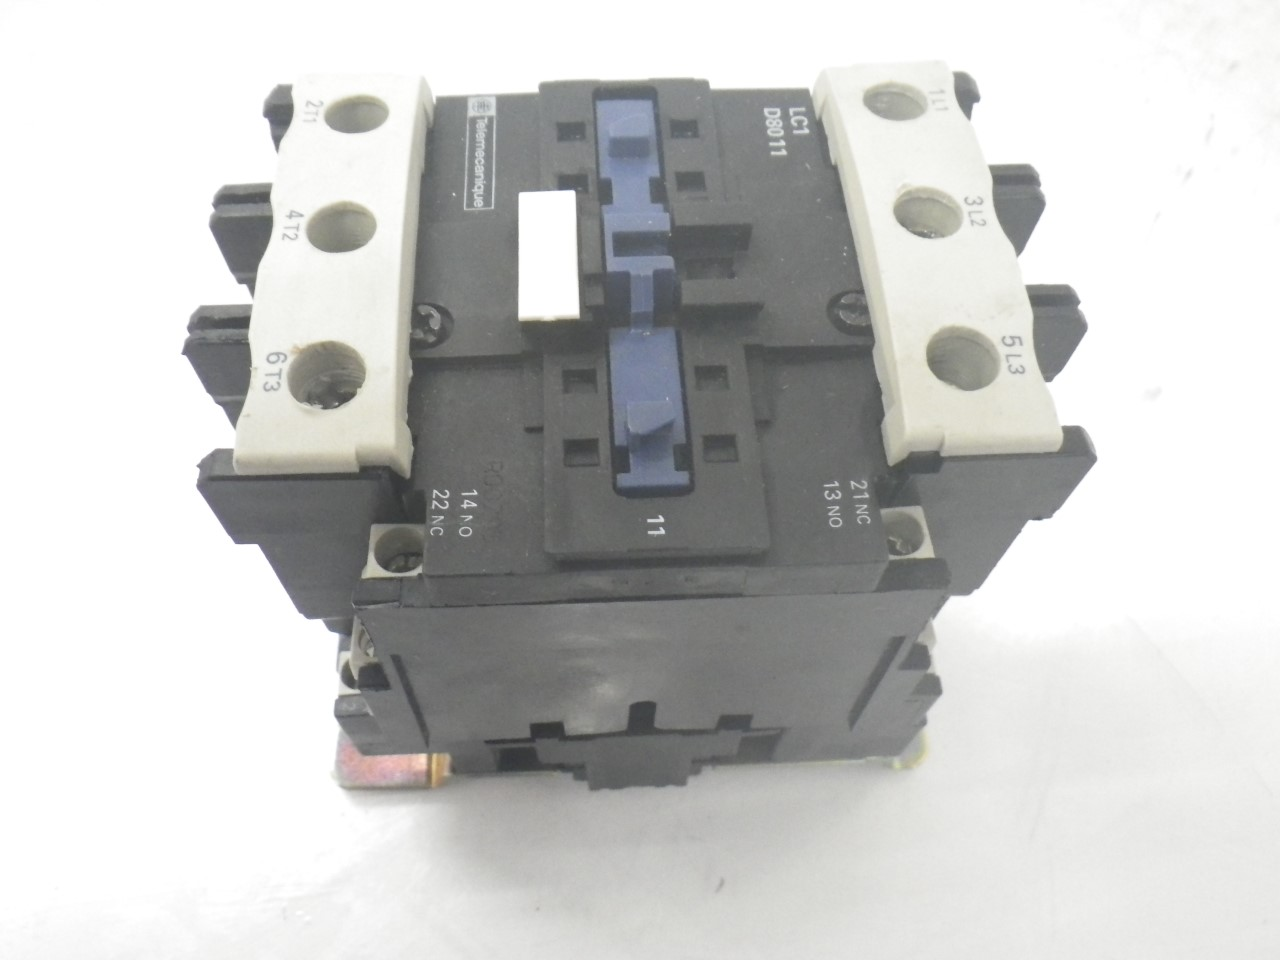 IMGP8343125A, 600V (3)LC1D8011 Telemecanique Contactor Magnetic Power Relay 125a, 600v (Used Tested)